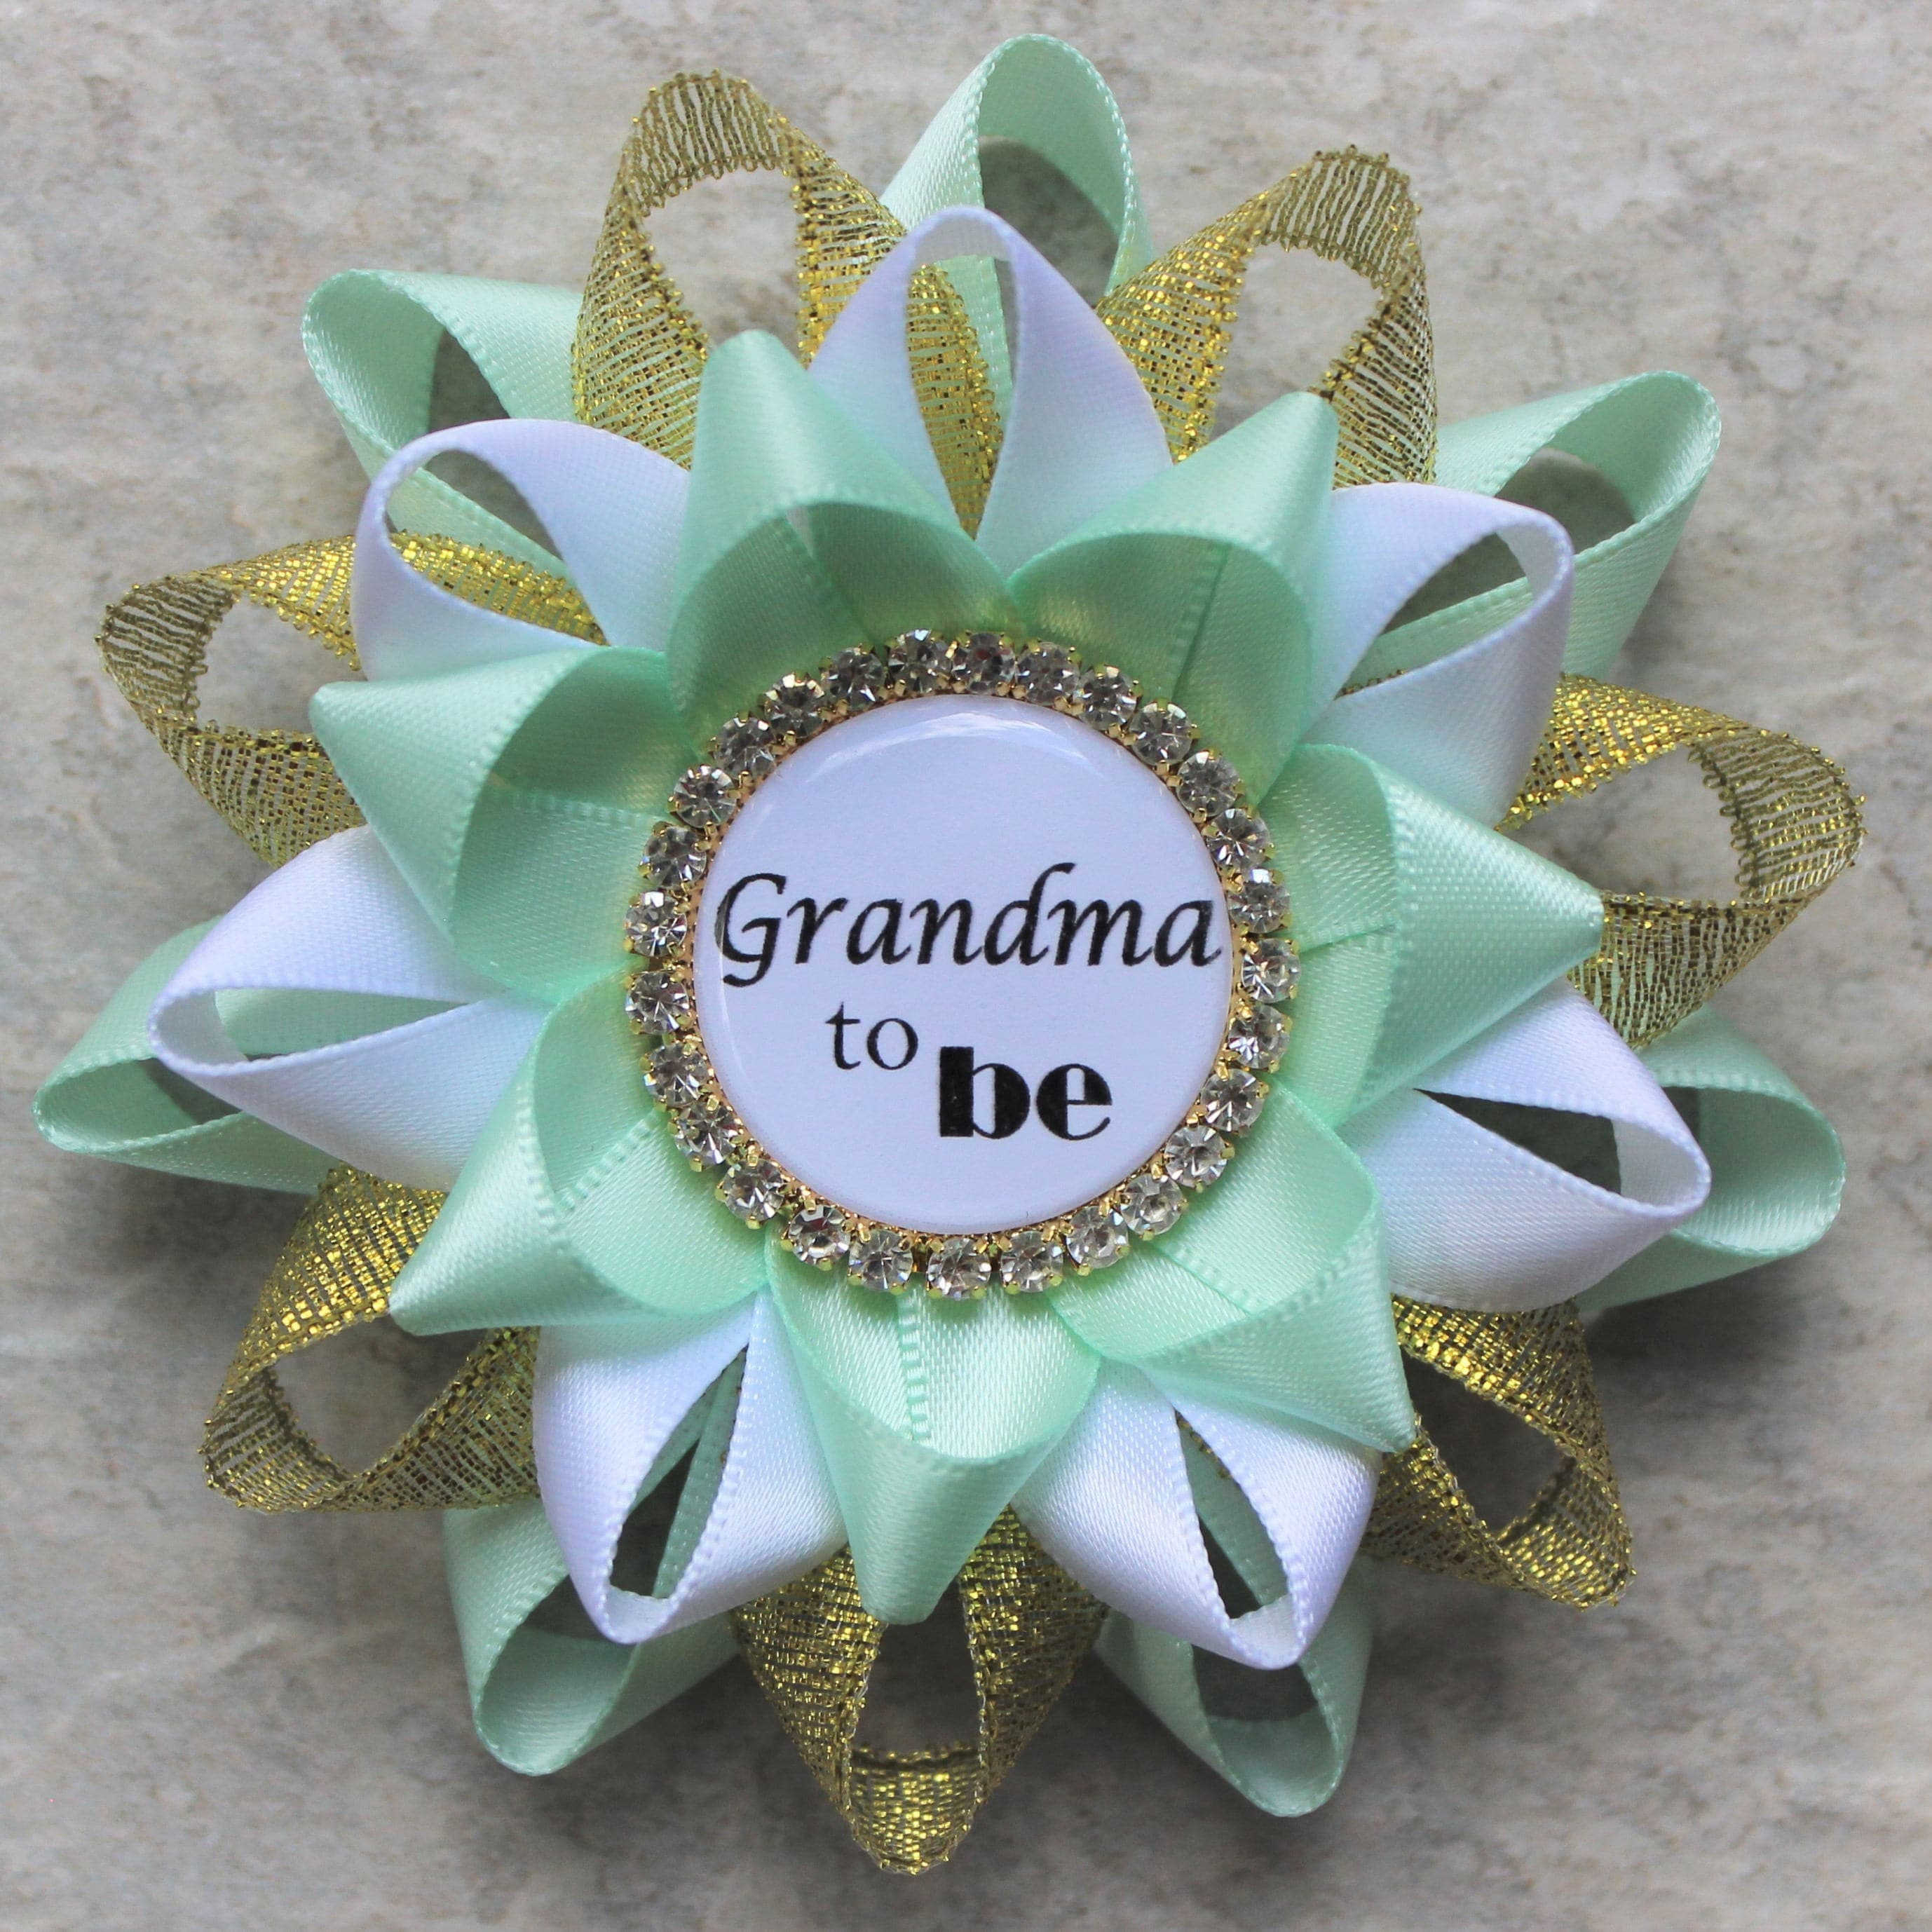 Marvelous Mint And Gold Baby Shower Pins, Baby Shower Decorations, Mint Green, Gold,  White, Baby Boy Shower, Grandma To Be, Mommy, Nana, Daddy, Sister